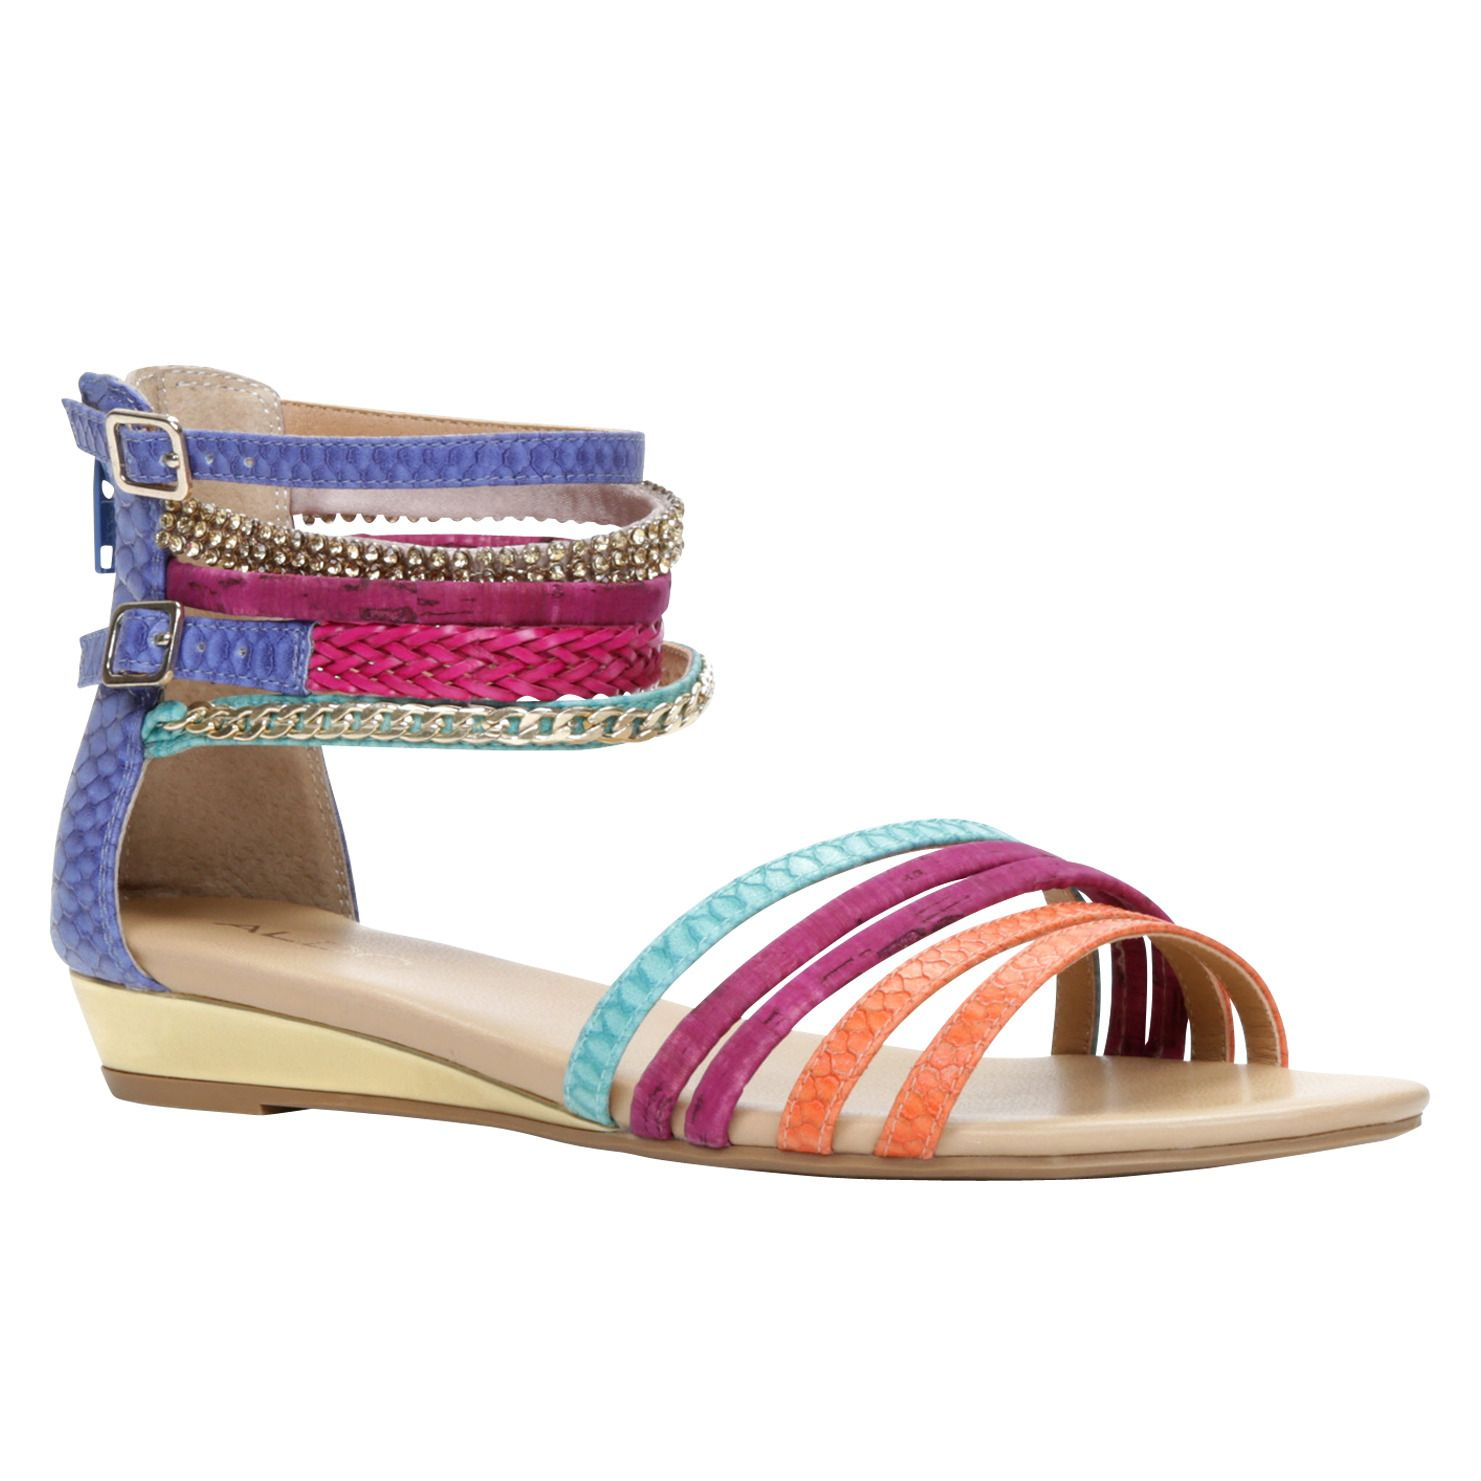 LEADY   women s low mid heels sandals for sale at ALDO Shoes I bought